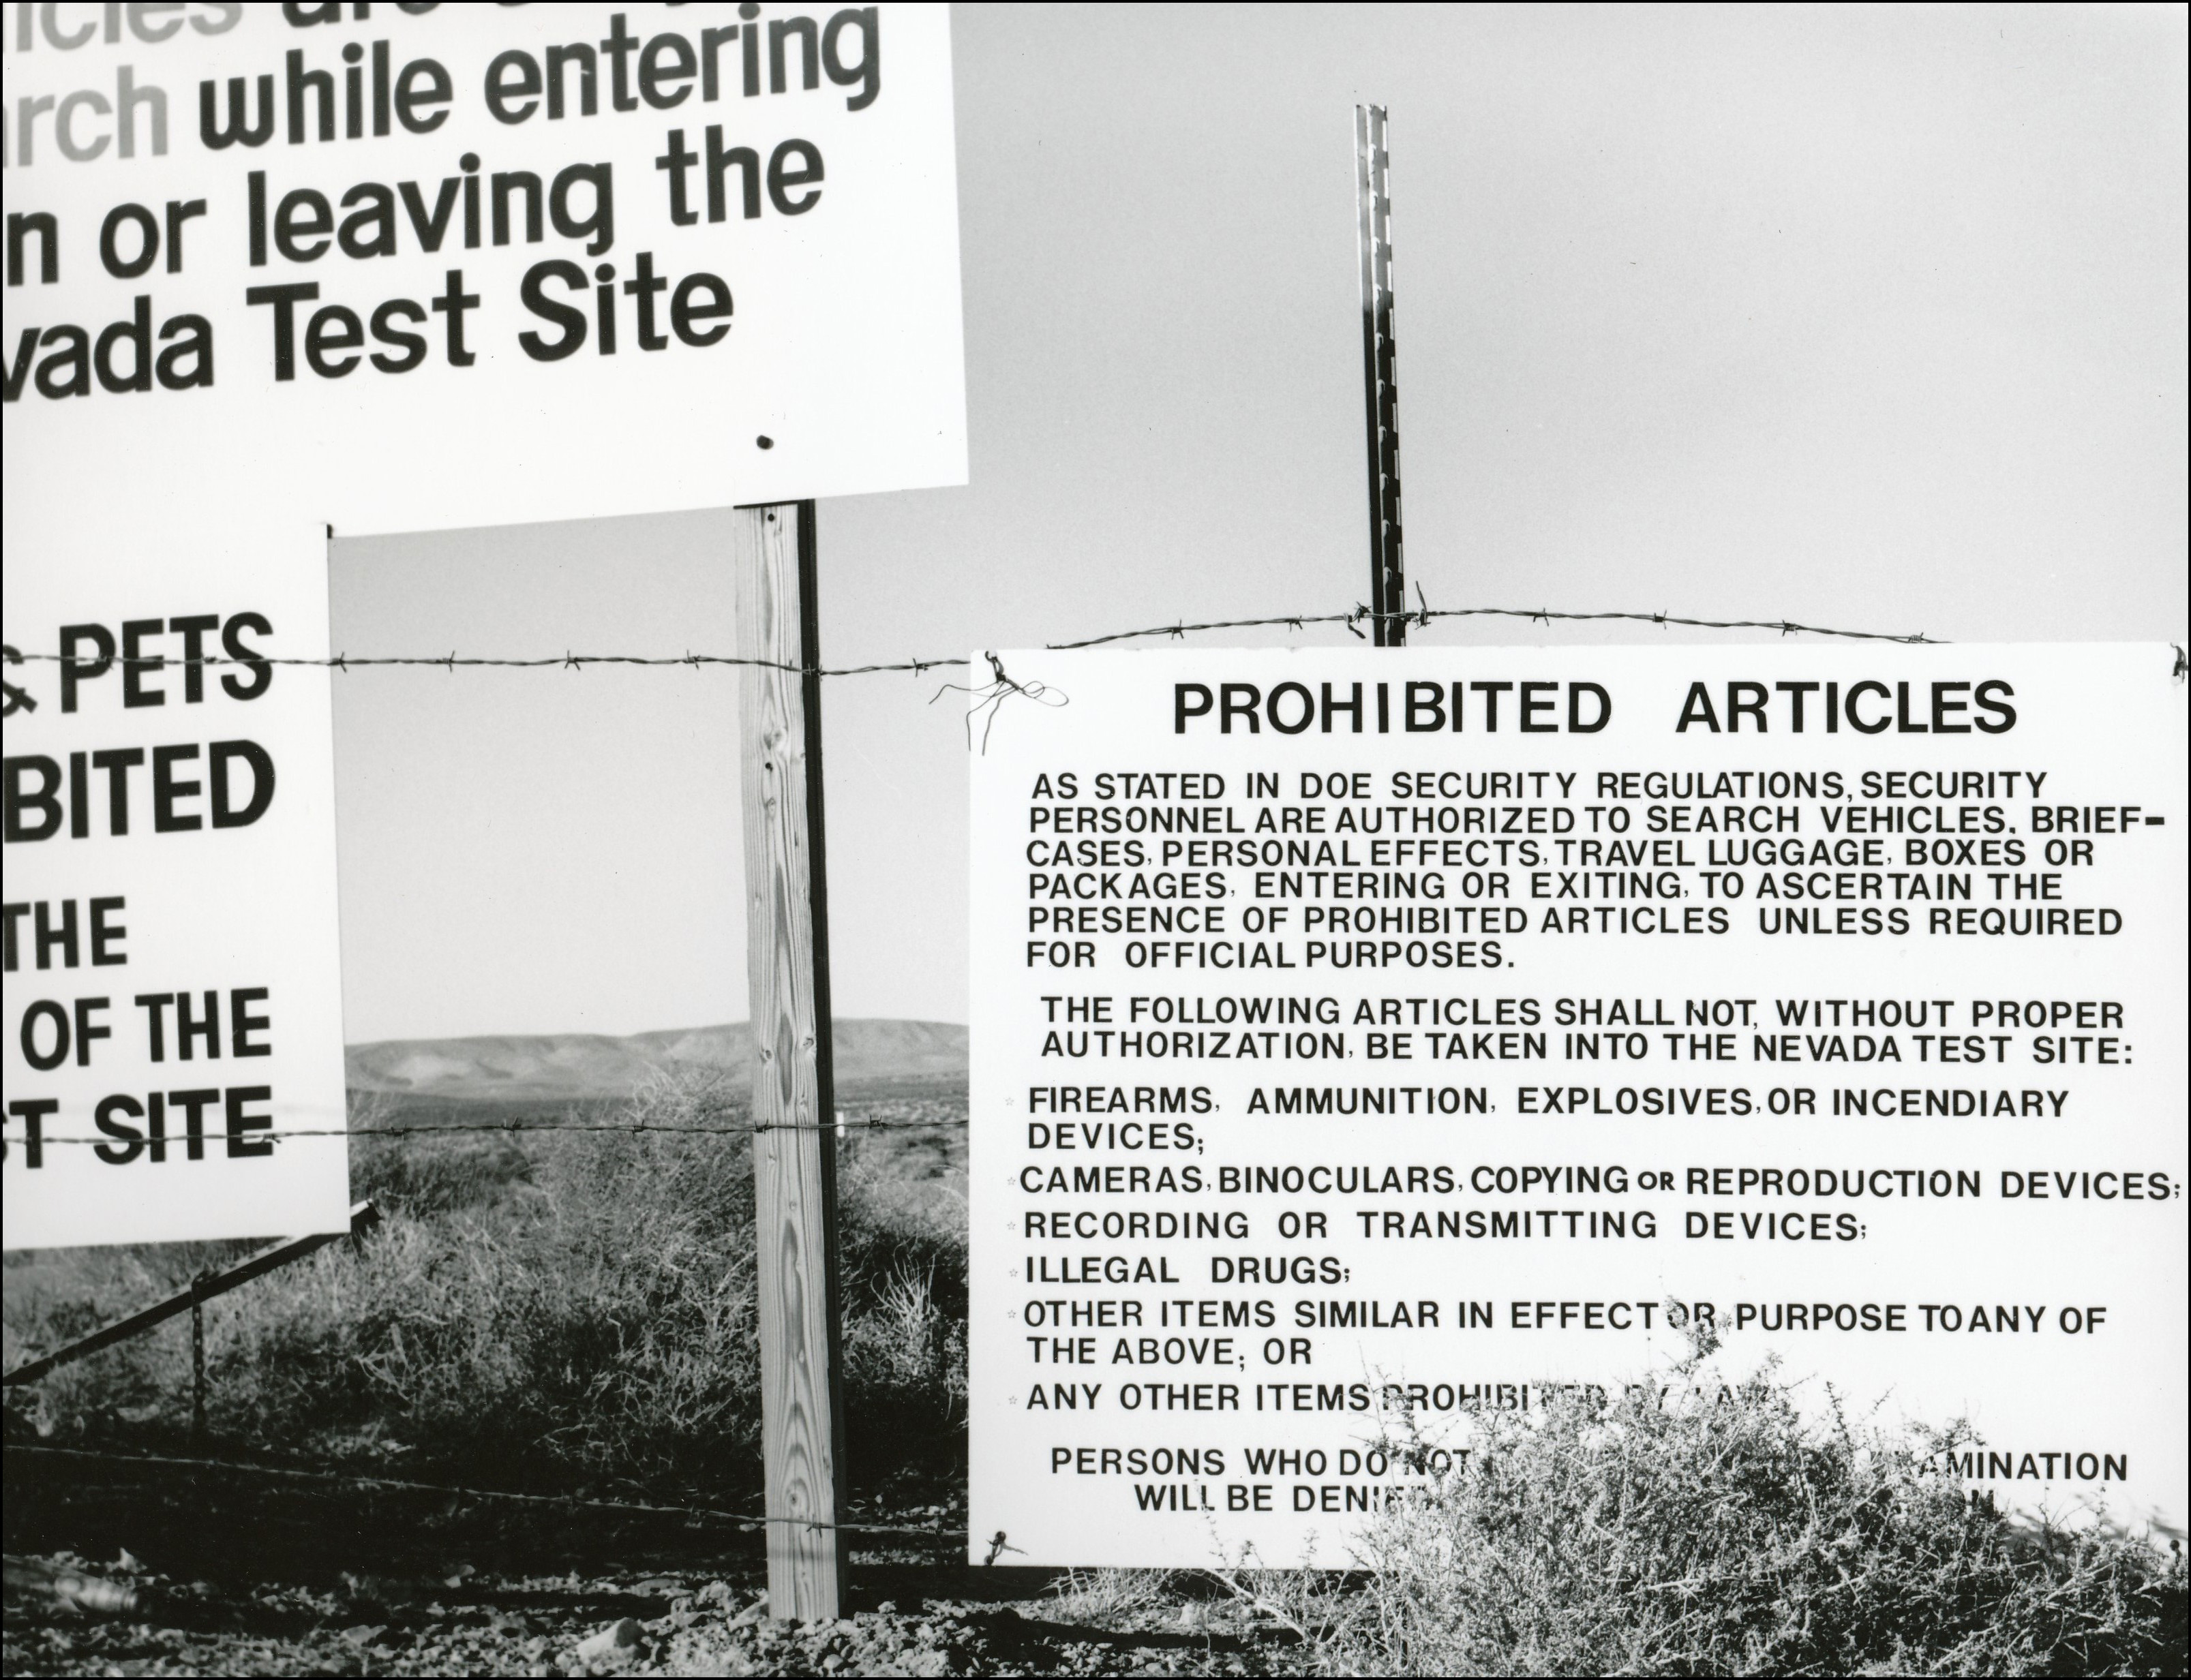 Warning signs for nuclear proving grounds hanging on fence